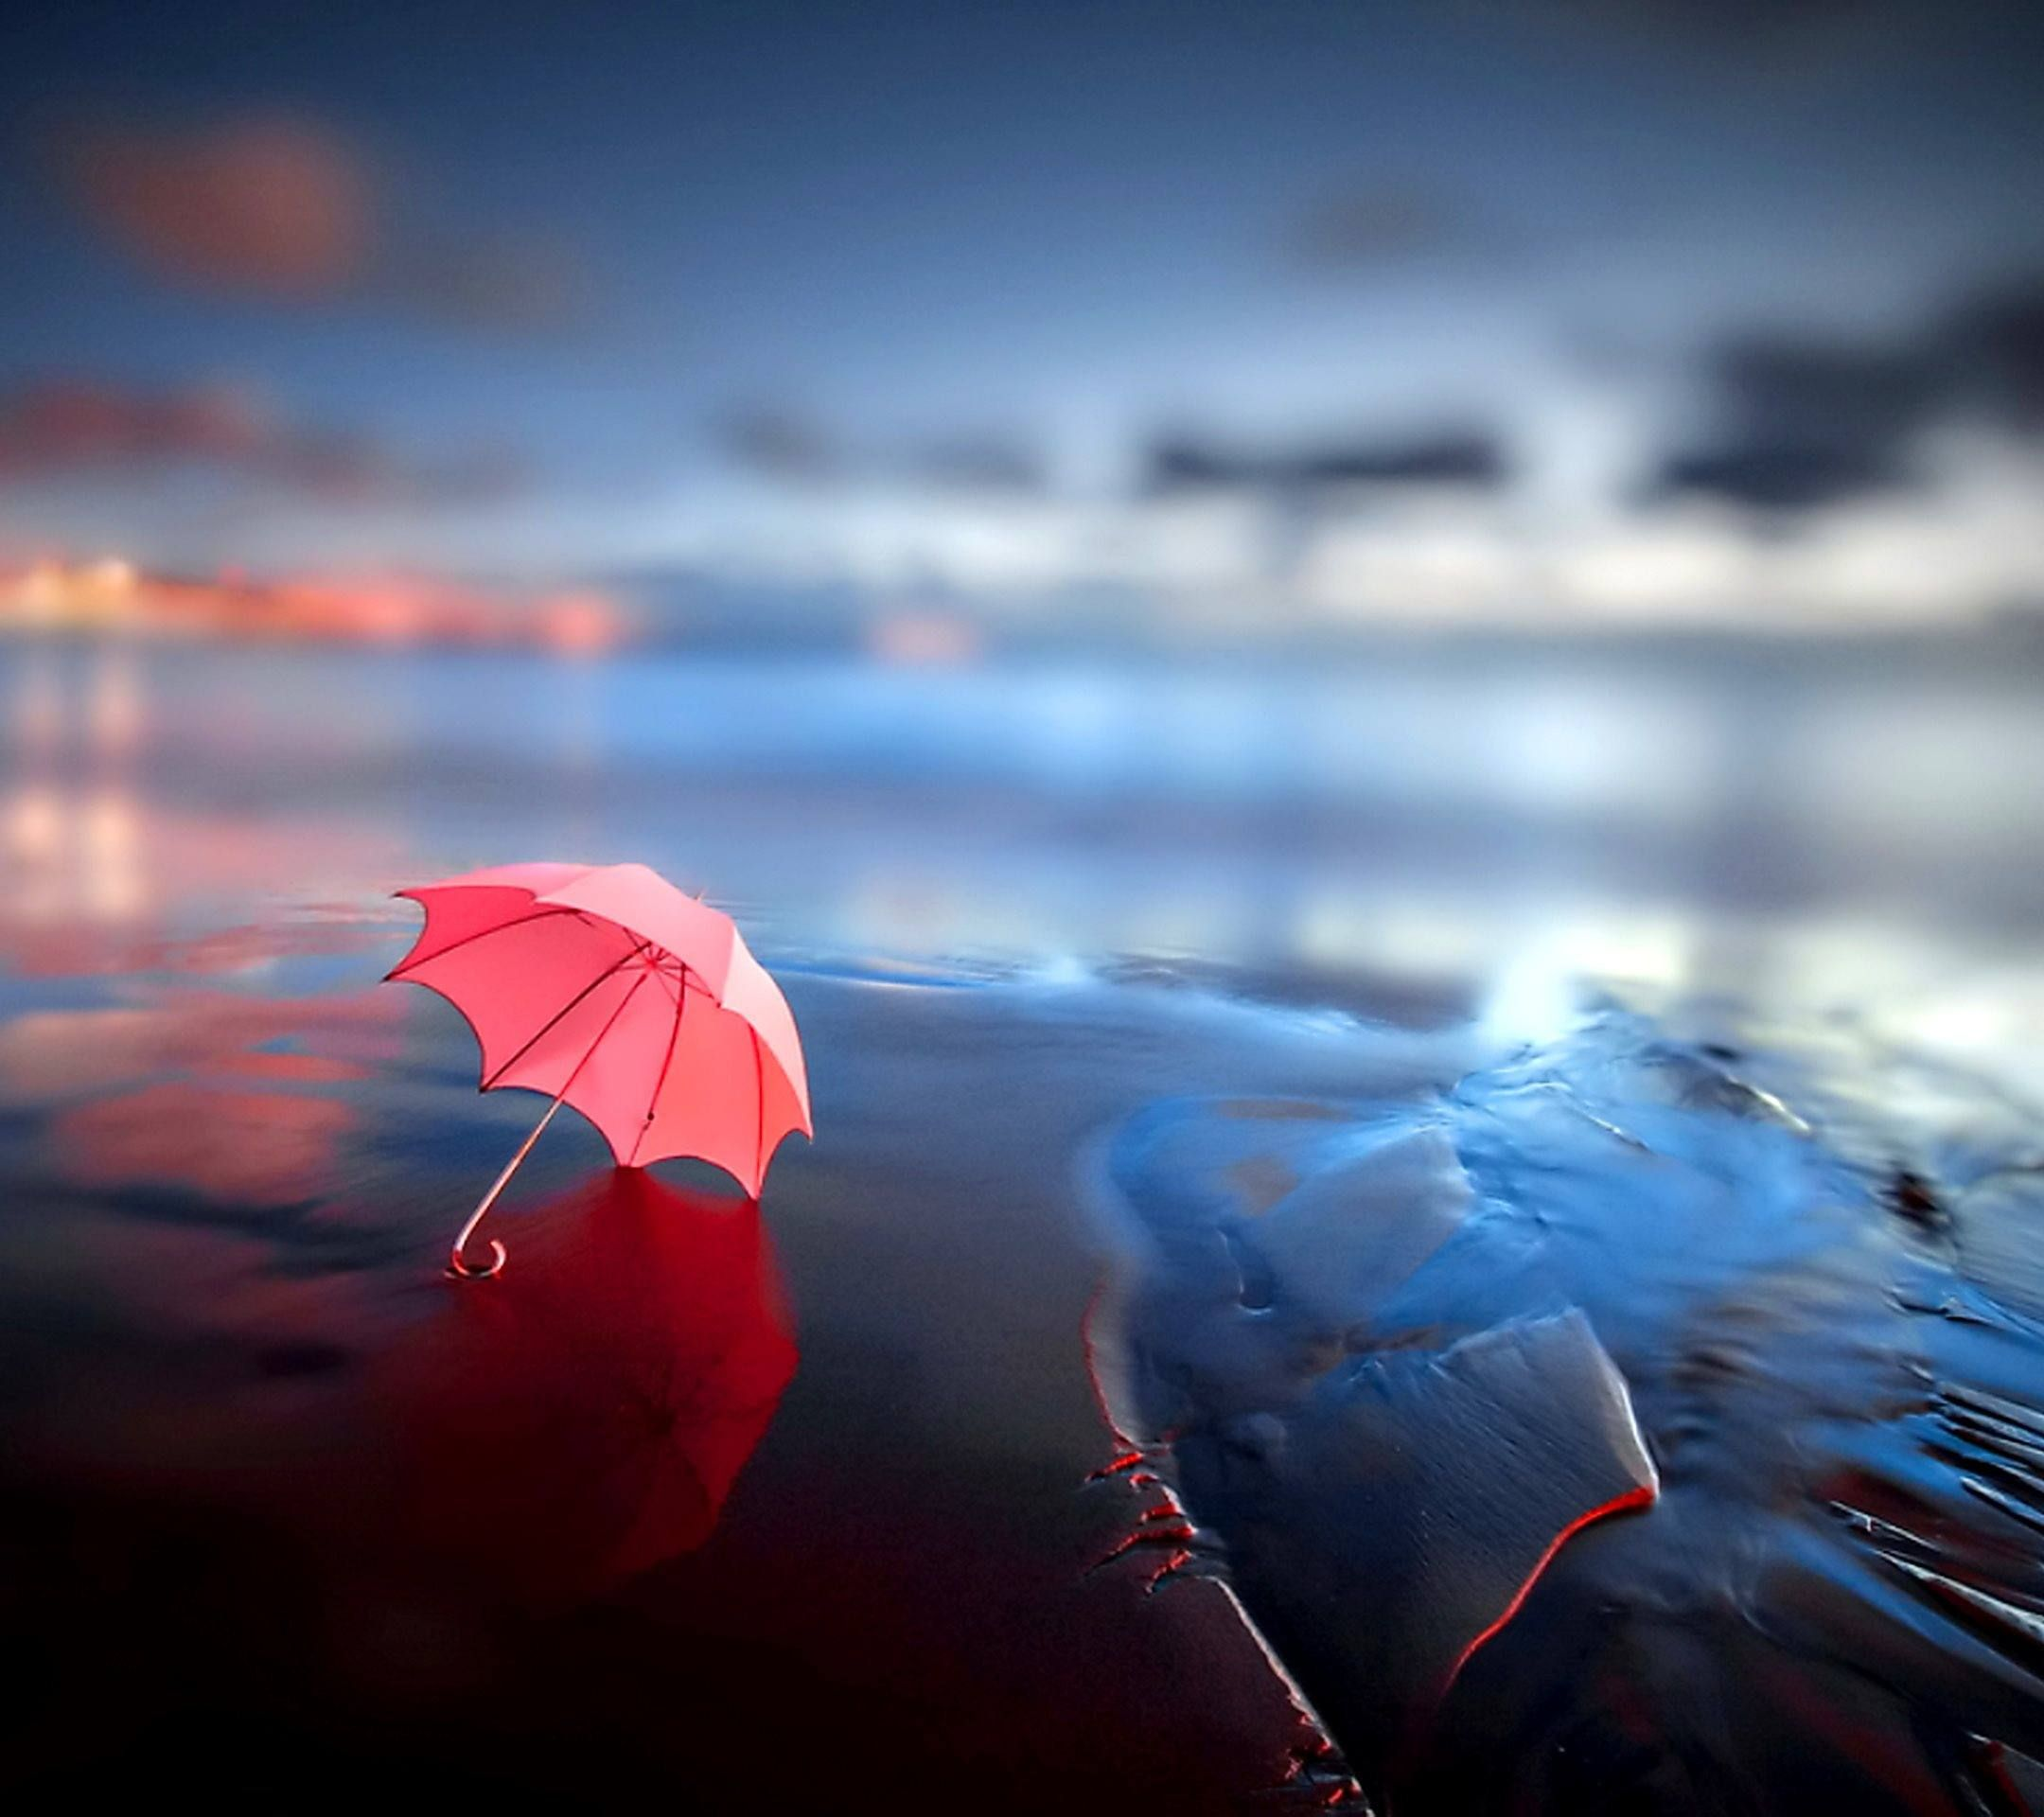 Red Umbrella On Beach Wallpaper For Android 8194 Wallpaper High Umbrella Beach Wallpaper Cute Umbrellas